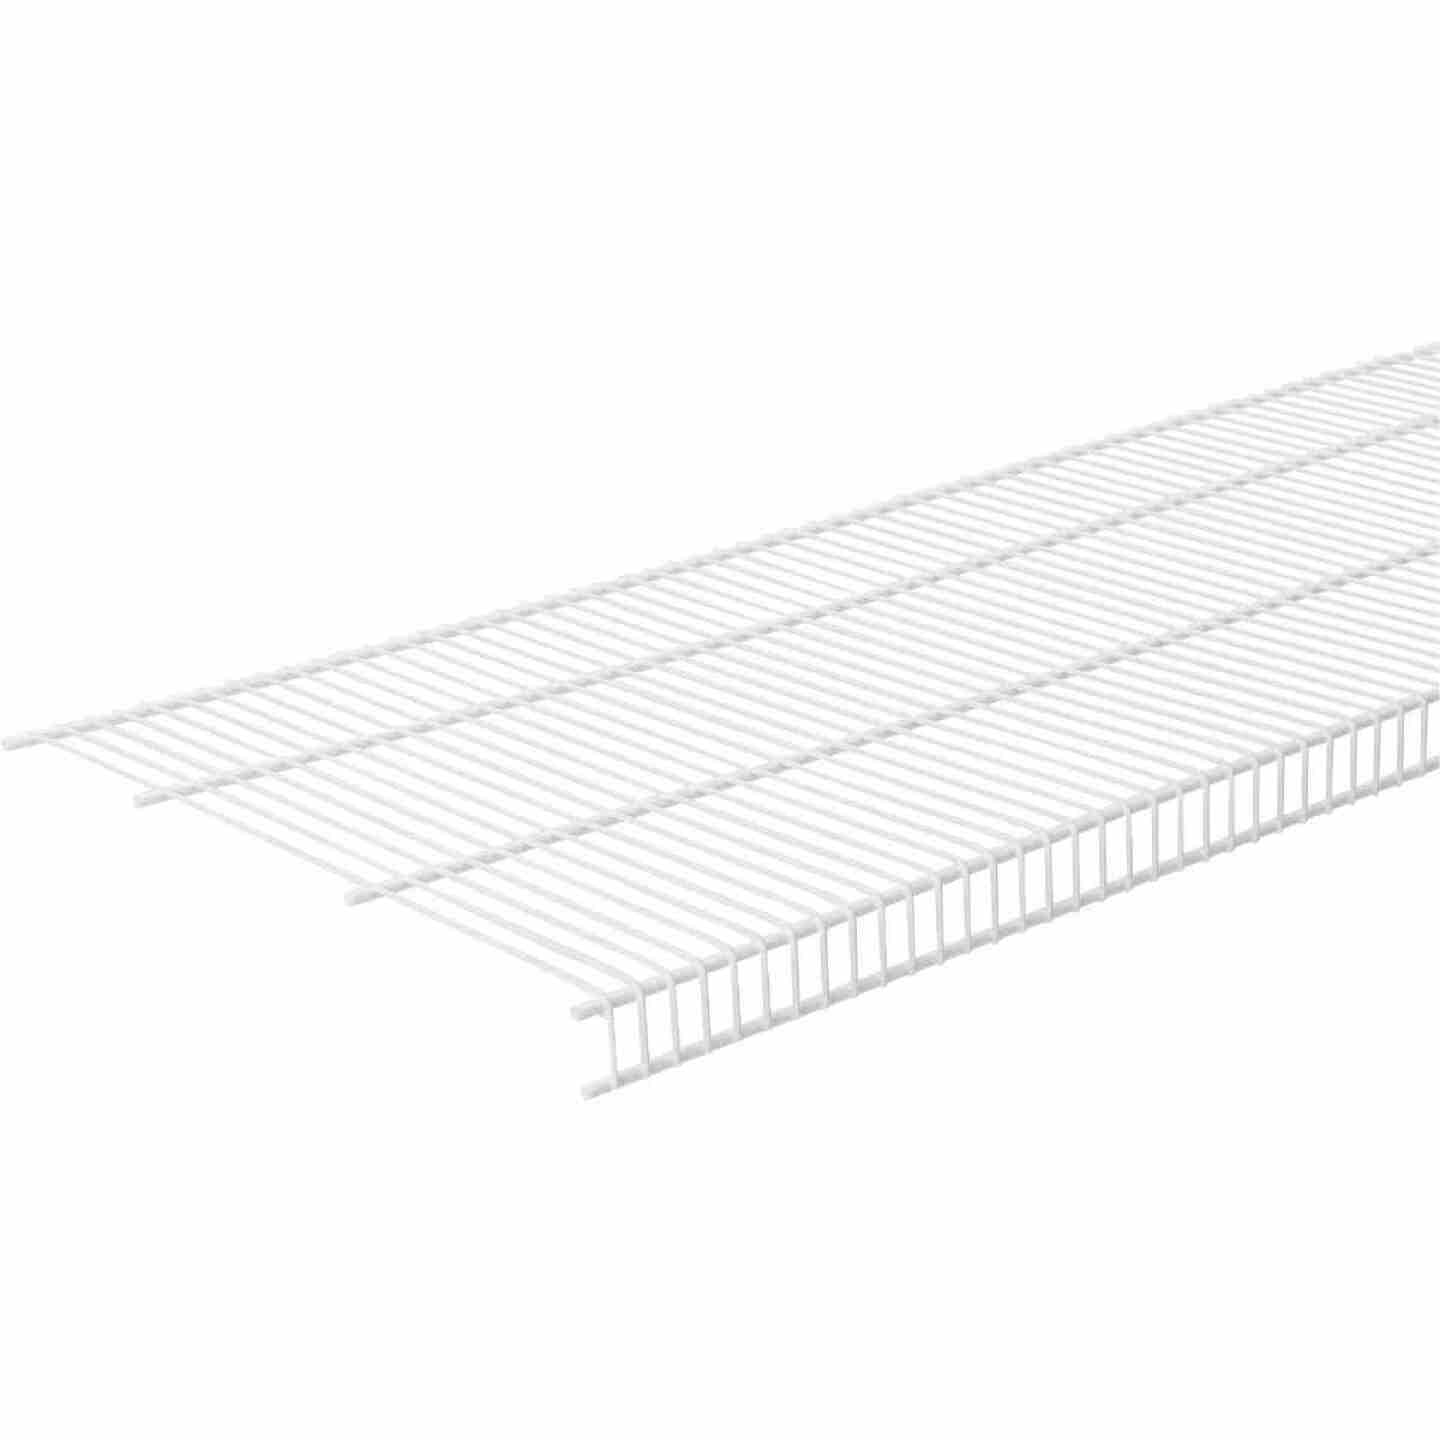 ClosetMaid 12 Ft. W. x 16 In. D. Close Mesh Ventilated Closet Shelf, White Image 1